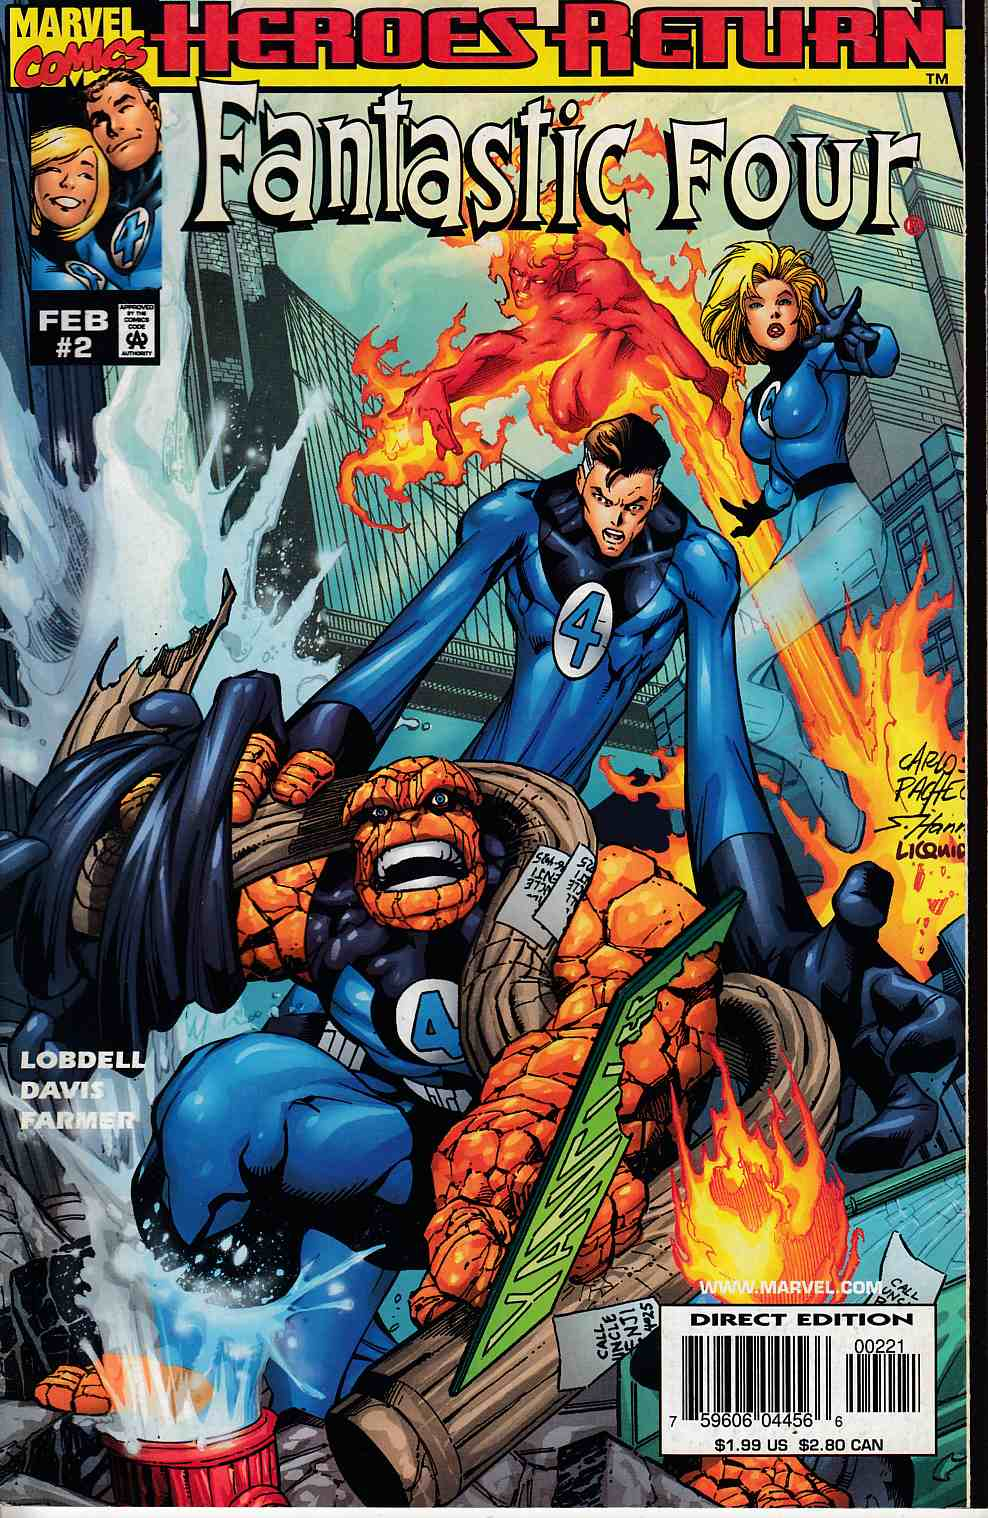 Fantastic Four #2 Cover B Very Fine (8.0) [Marvel Comic] THUMBNAIL